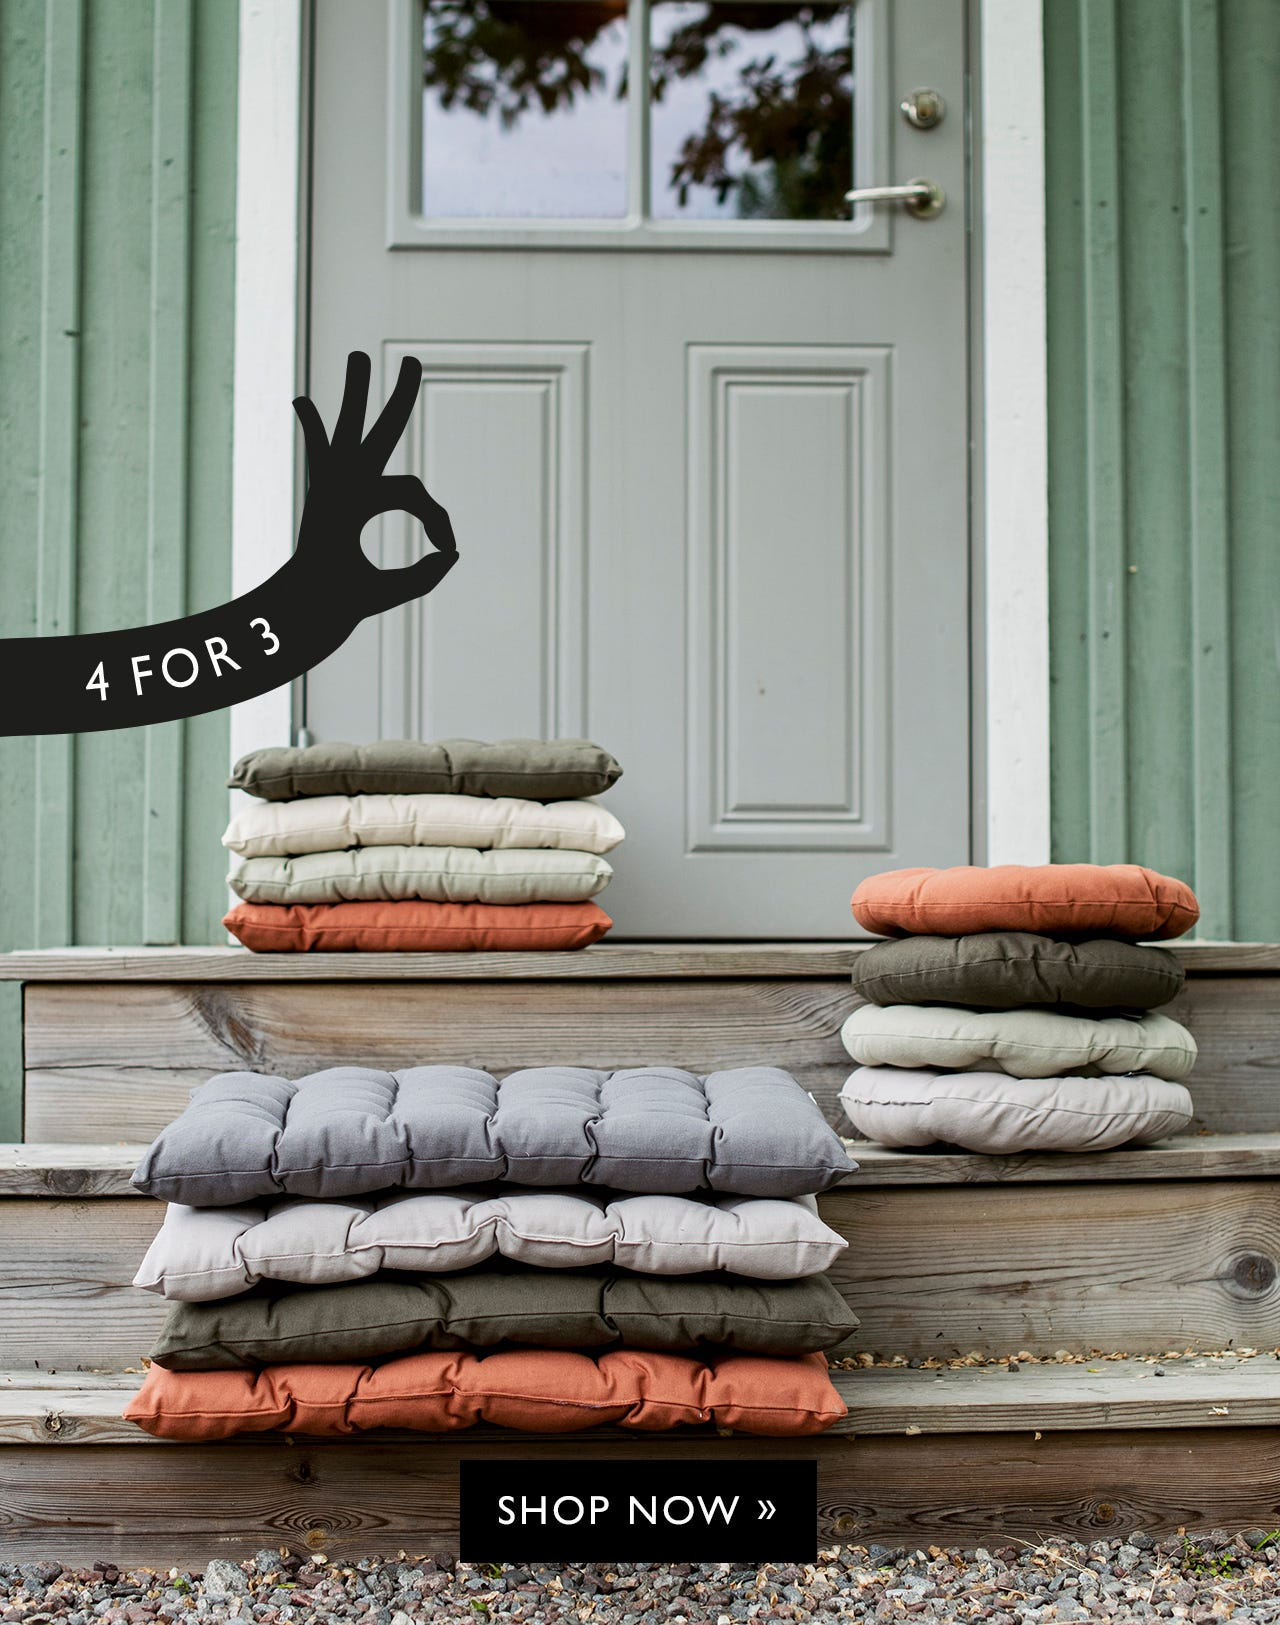 Member deal - 4 for 3 on outdoor cushions